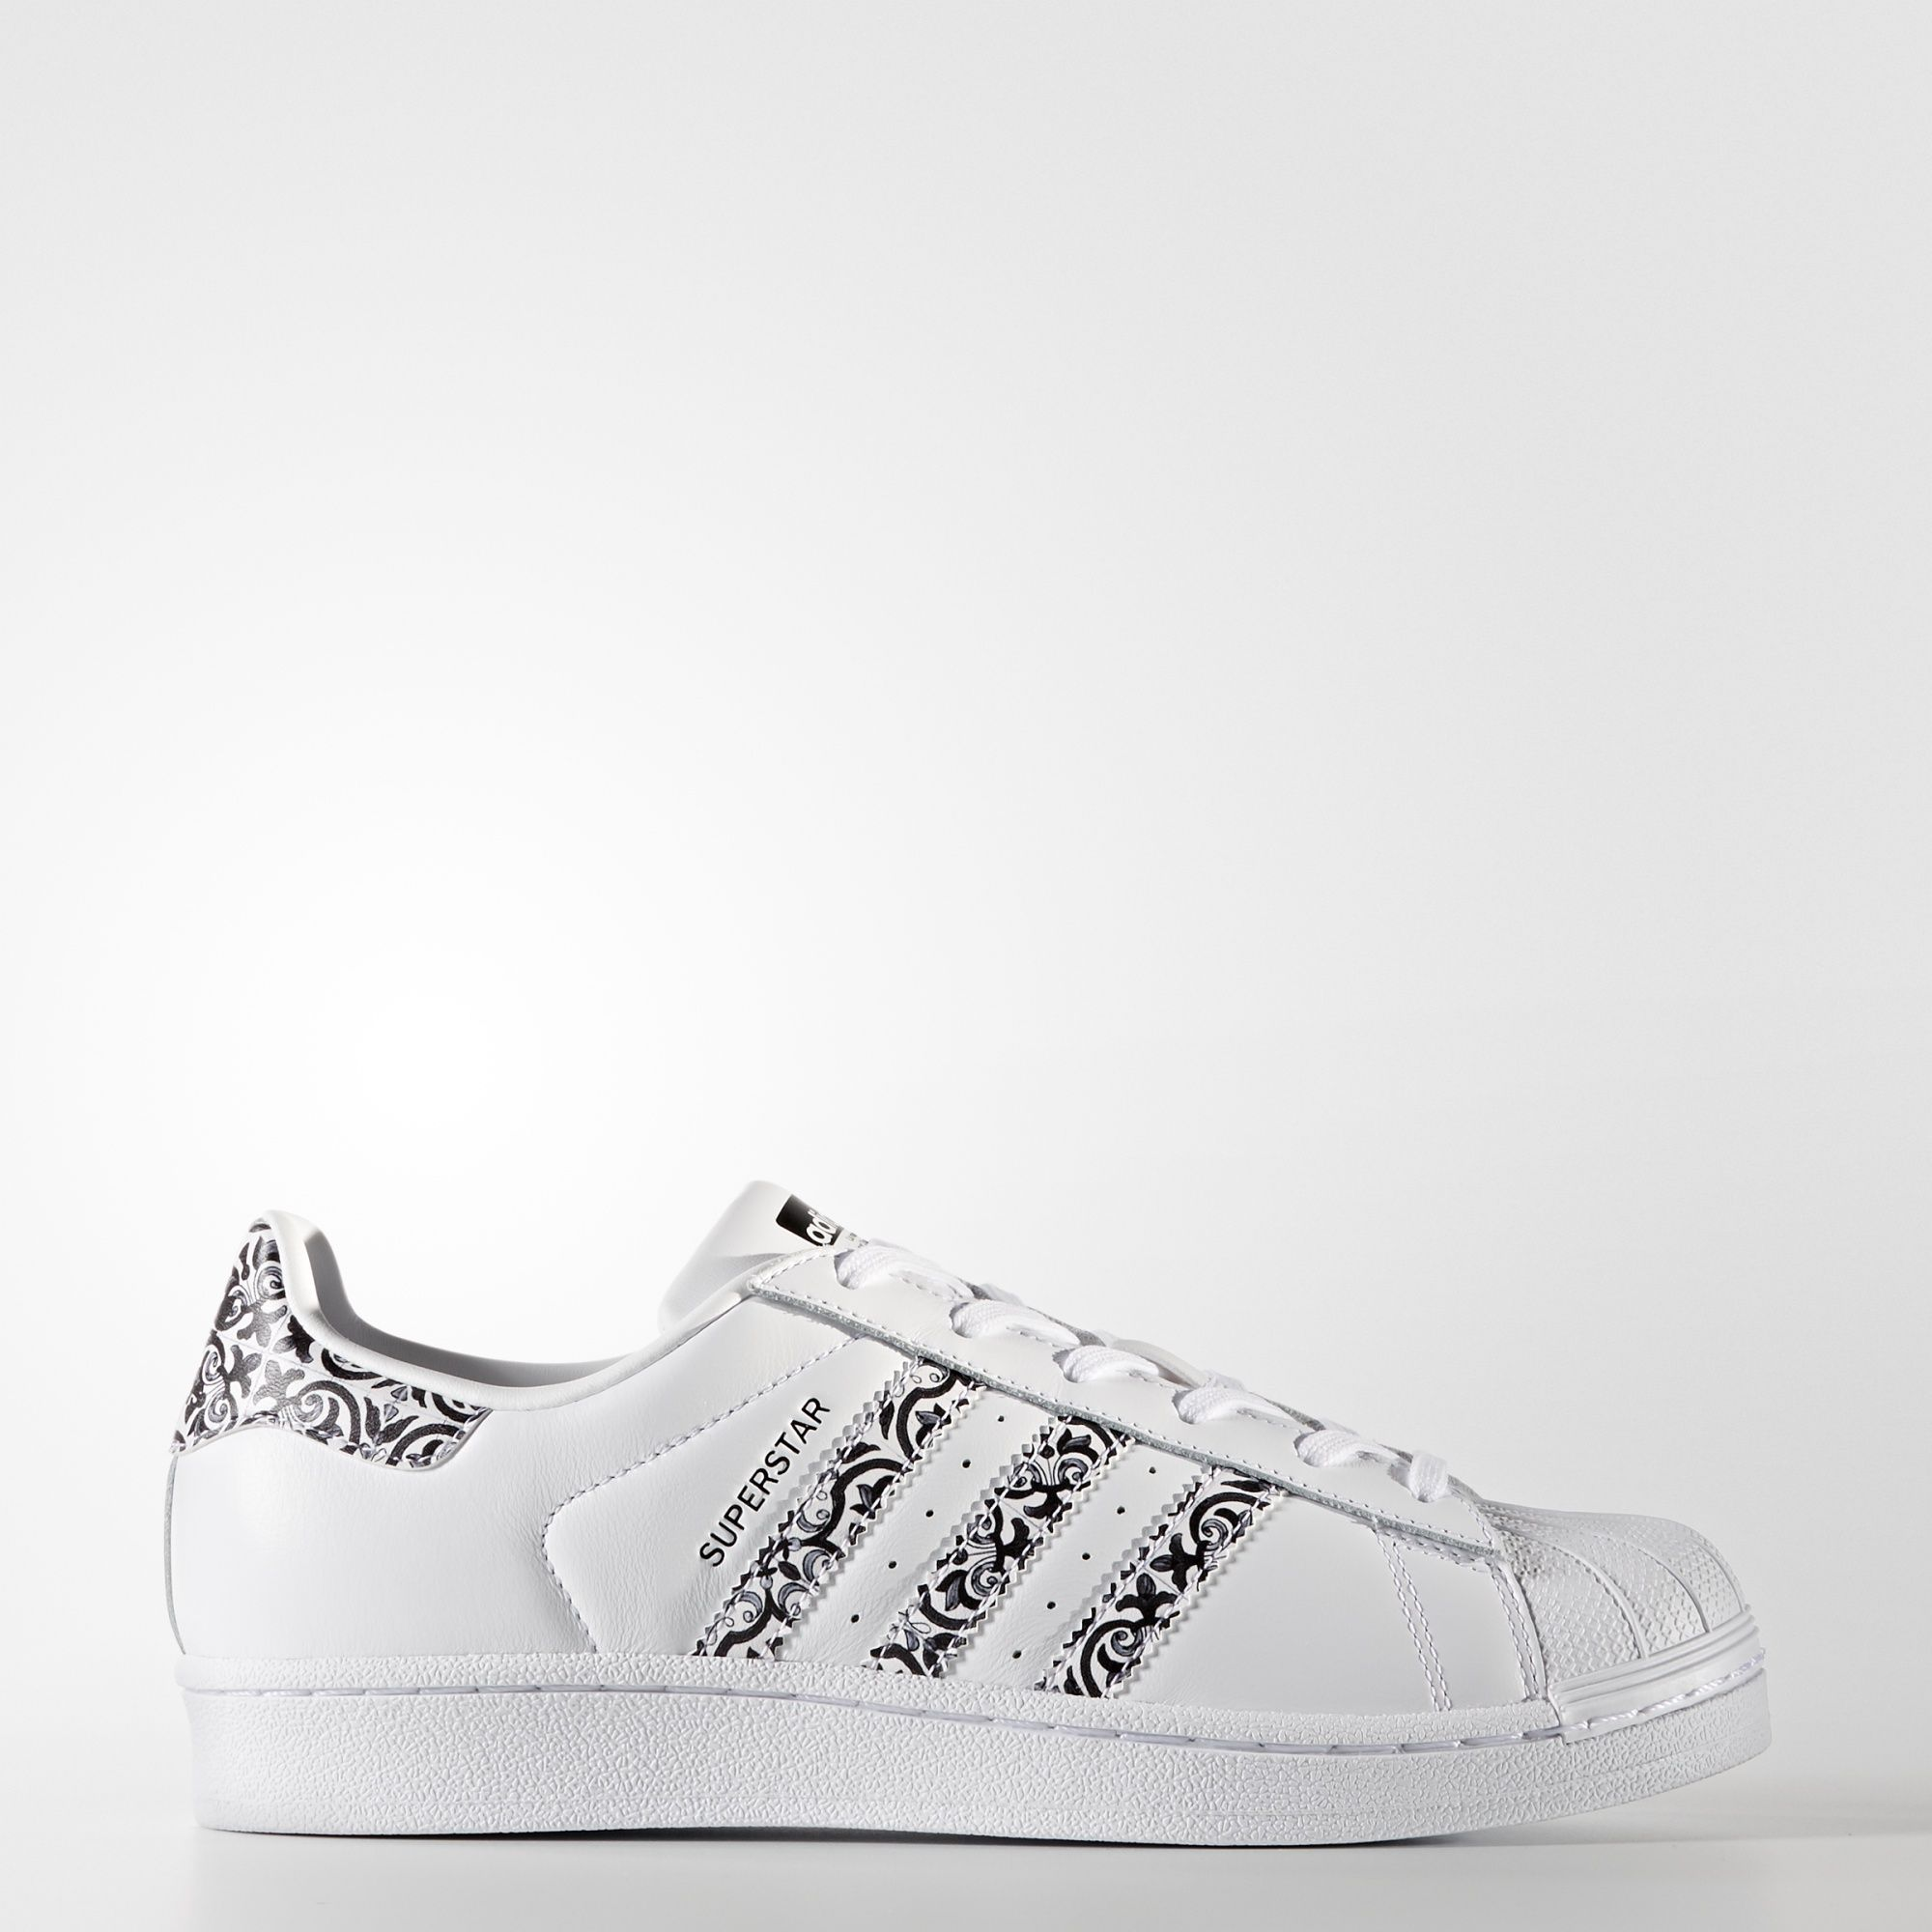 adidas Superstar Shoes With Classic Shell Toe | adidas US